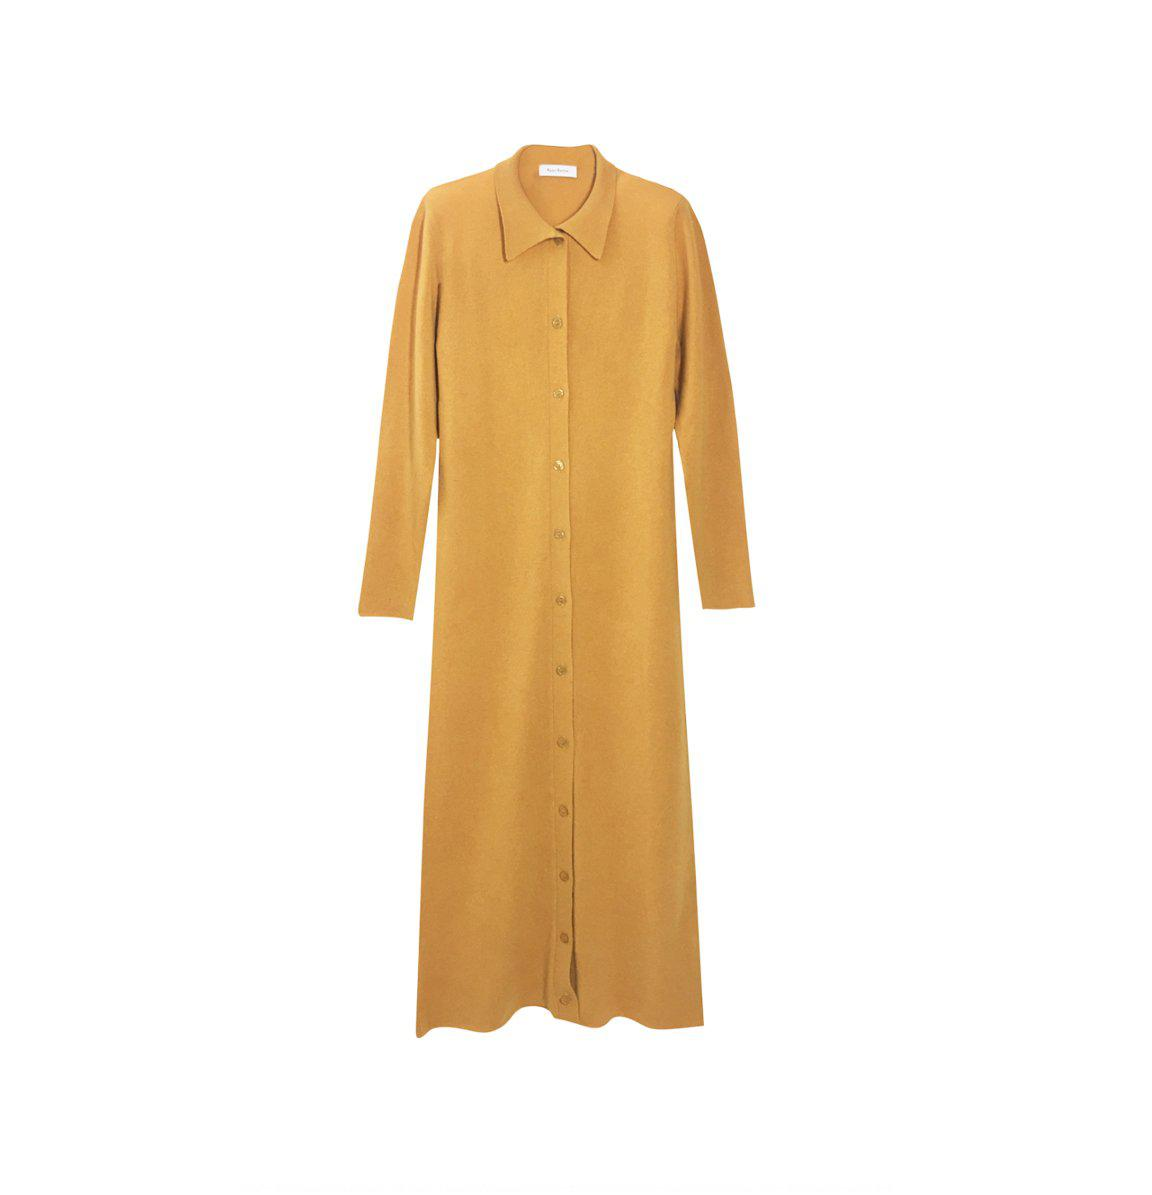 RYAN ROCHE CASHMERE COLLARED FRONT PLACKET SHIRT DRESS